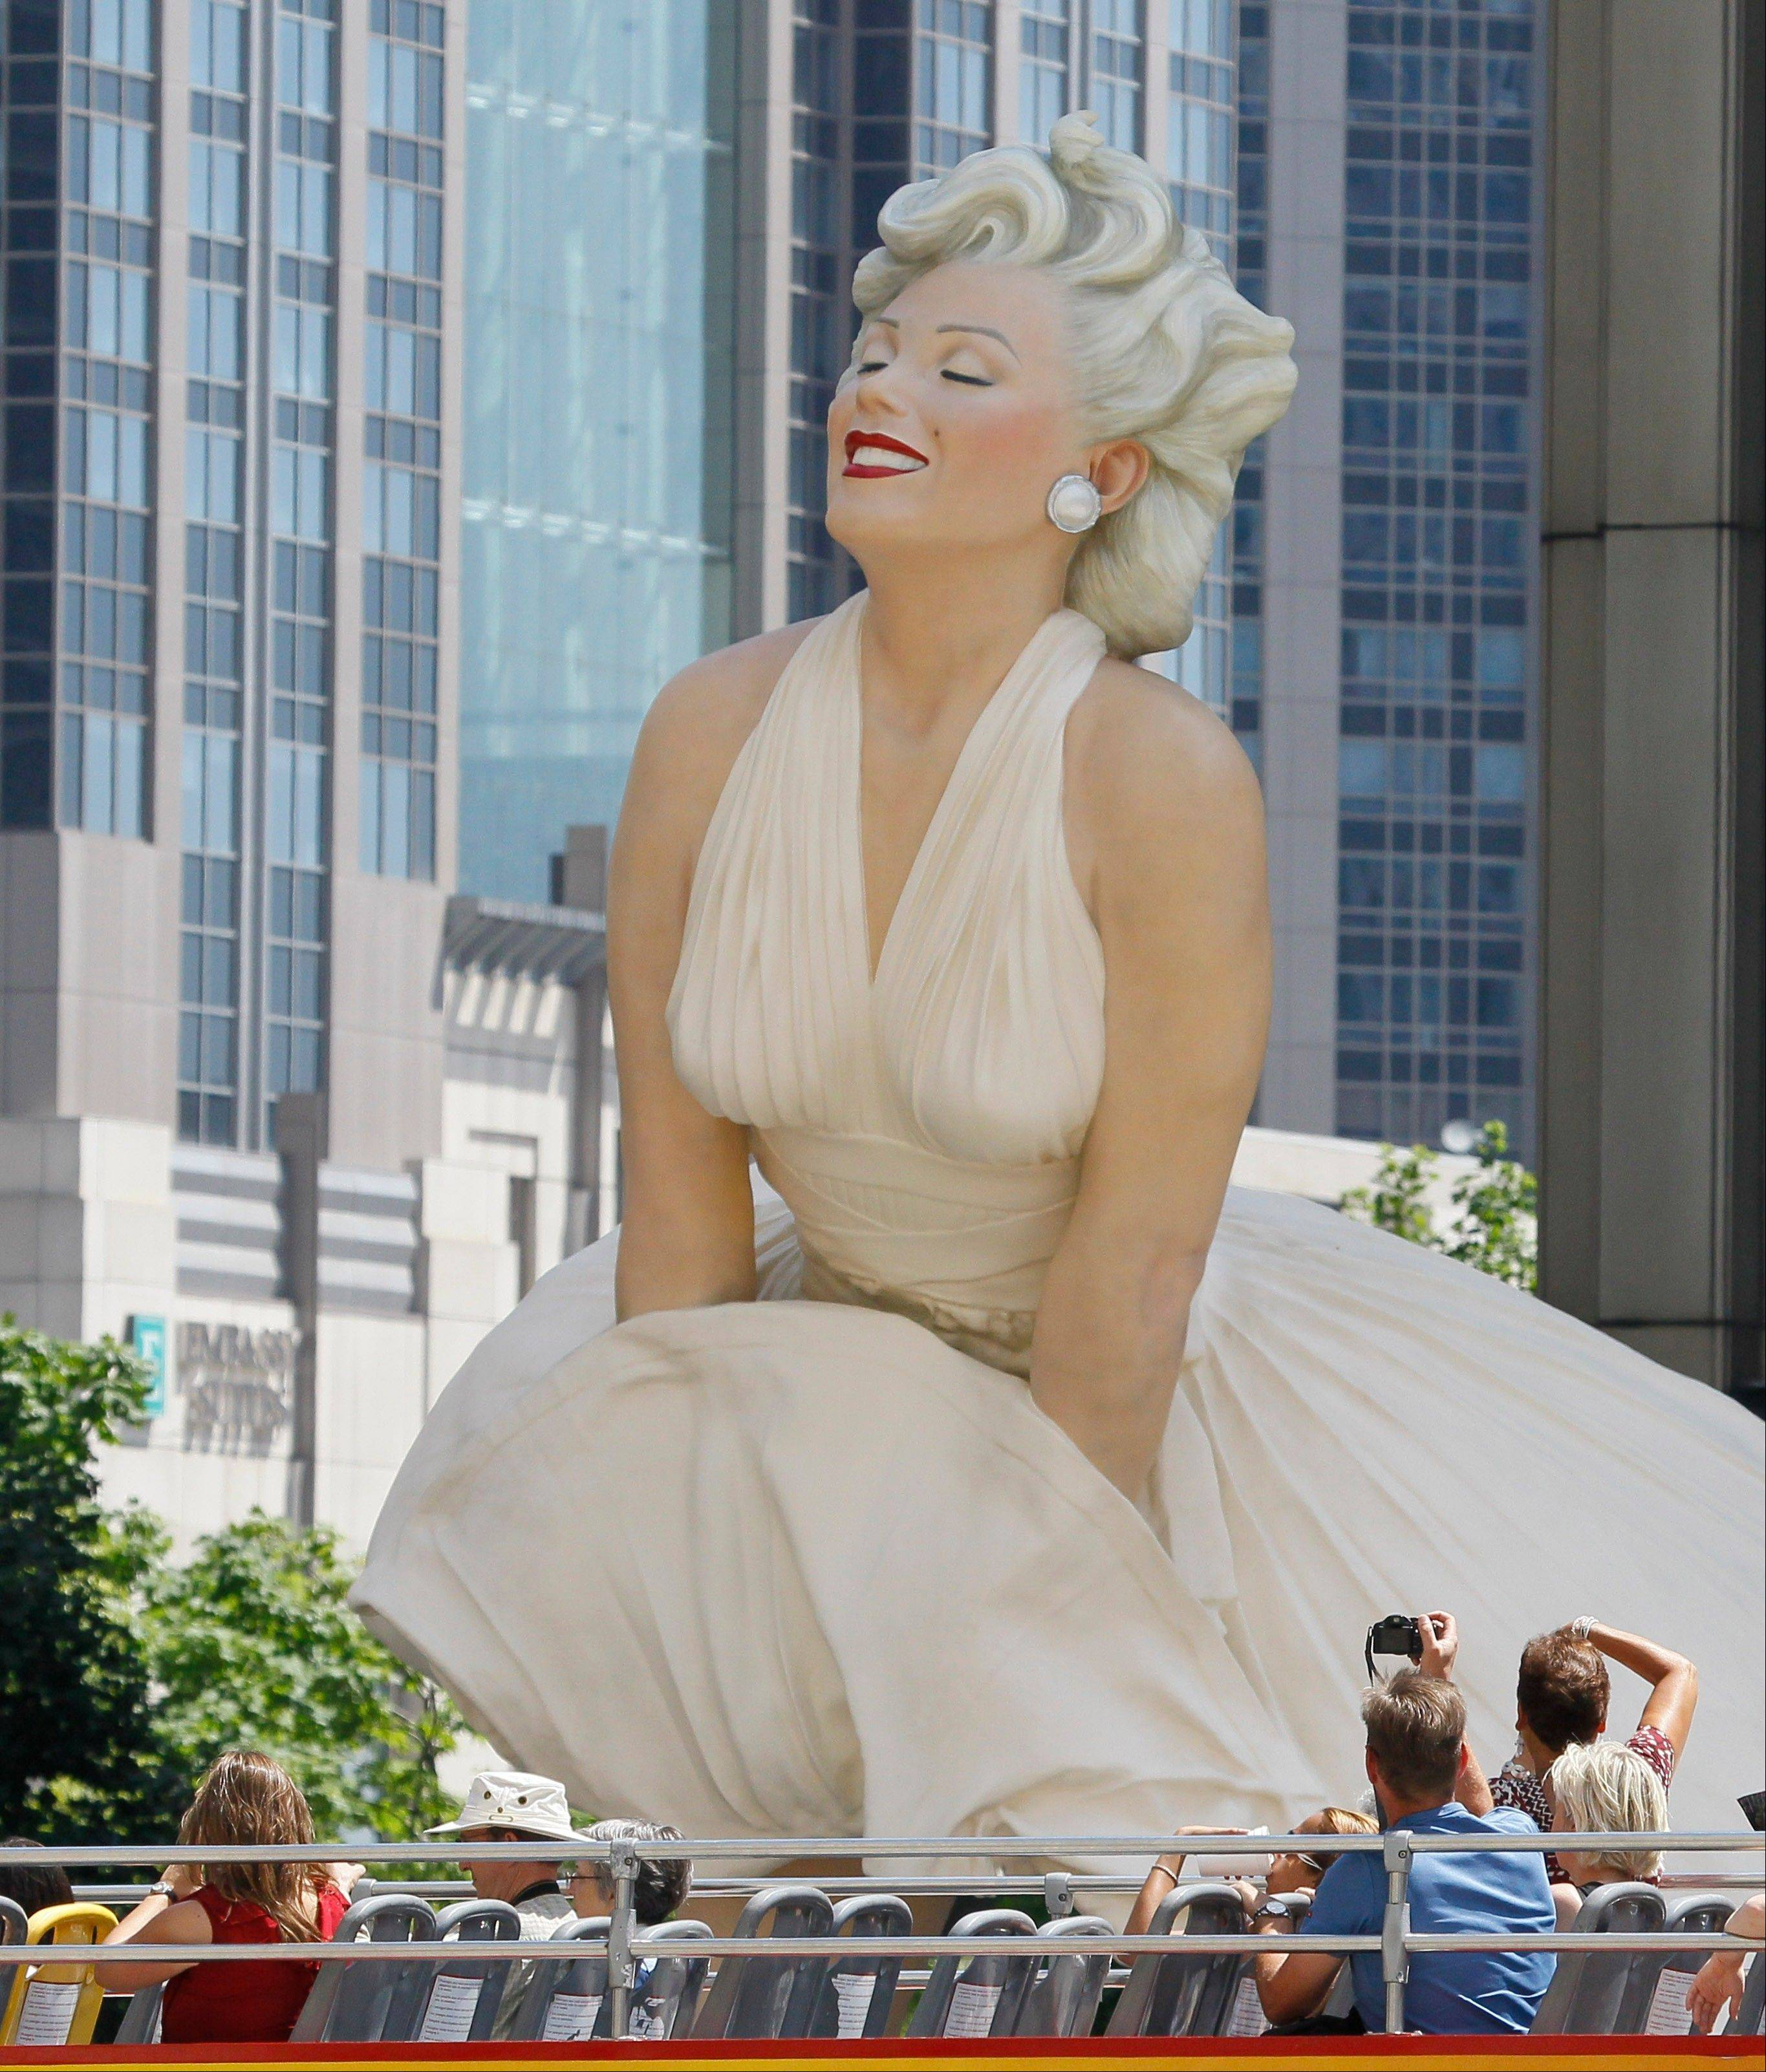 Tourists on a double-decker bus photograph Seward Johnson's 26-foot-tall sculpture of Marilyn Monroe, in her most famous windblown pose, when it was in Chicago last year.